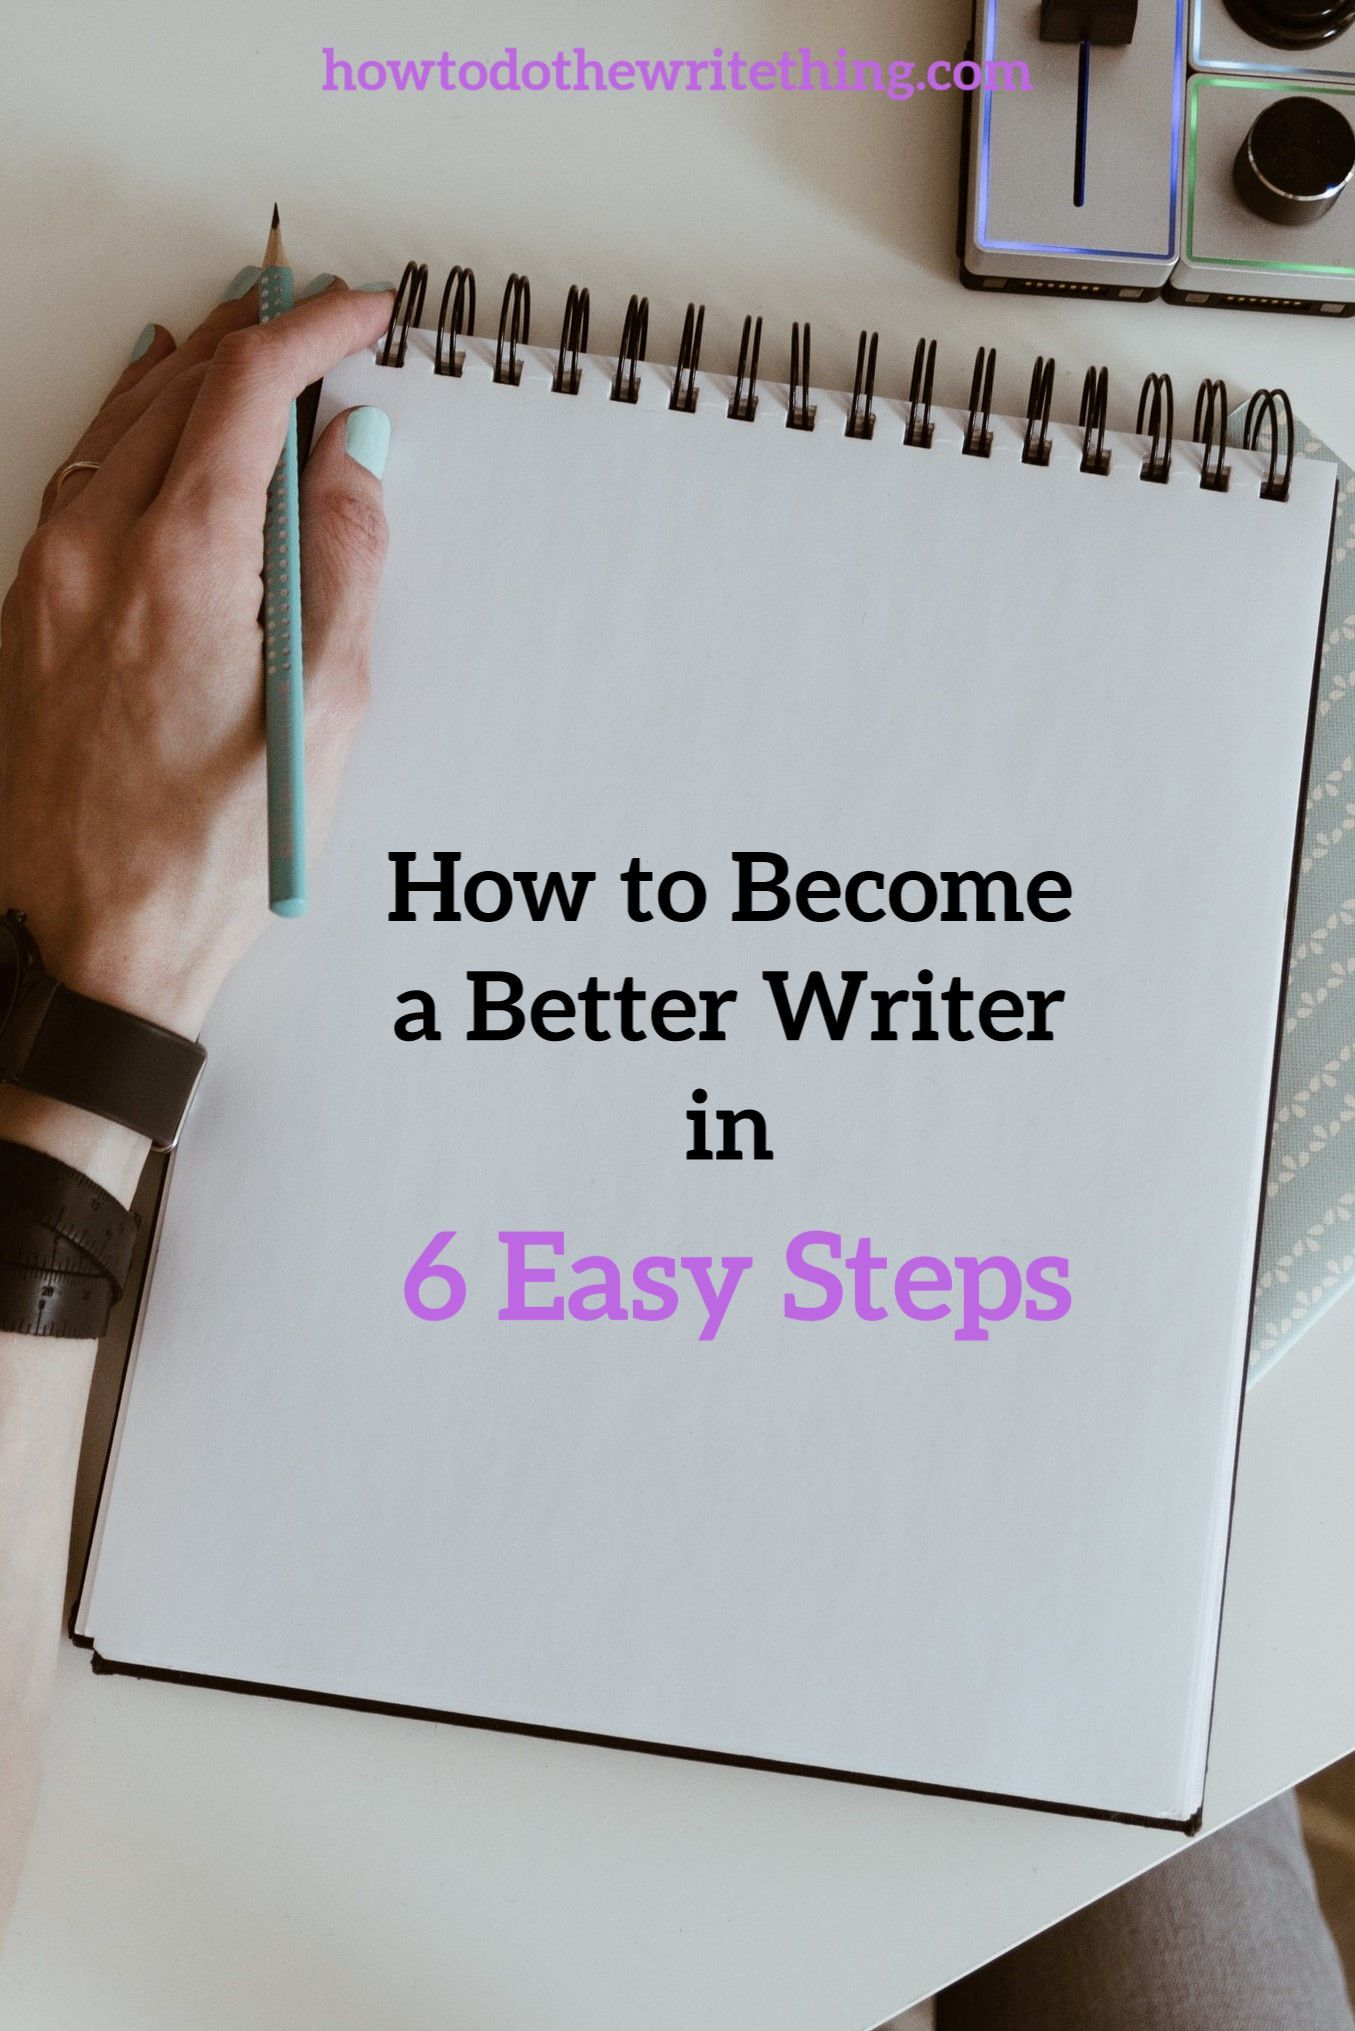 How to Become a Better Writer in 10 Easy Steps  Book writing tips